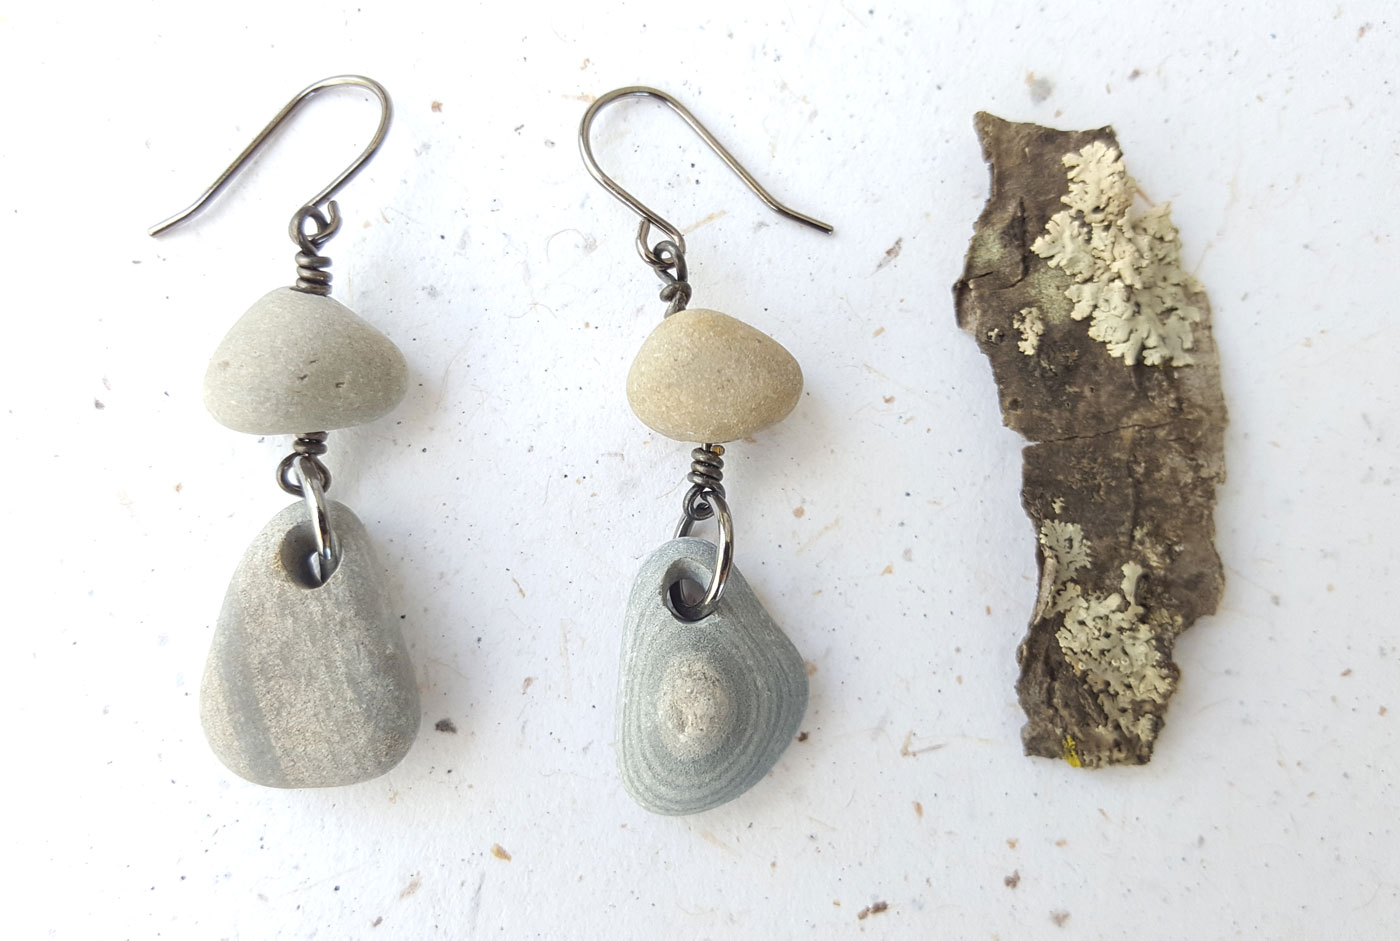 ethnic earrings dropshipping jewelry diablo bohemian european designer products jasper womens cape natural store stone dangle vintage